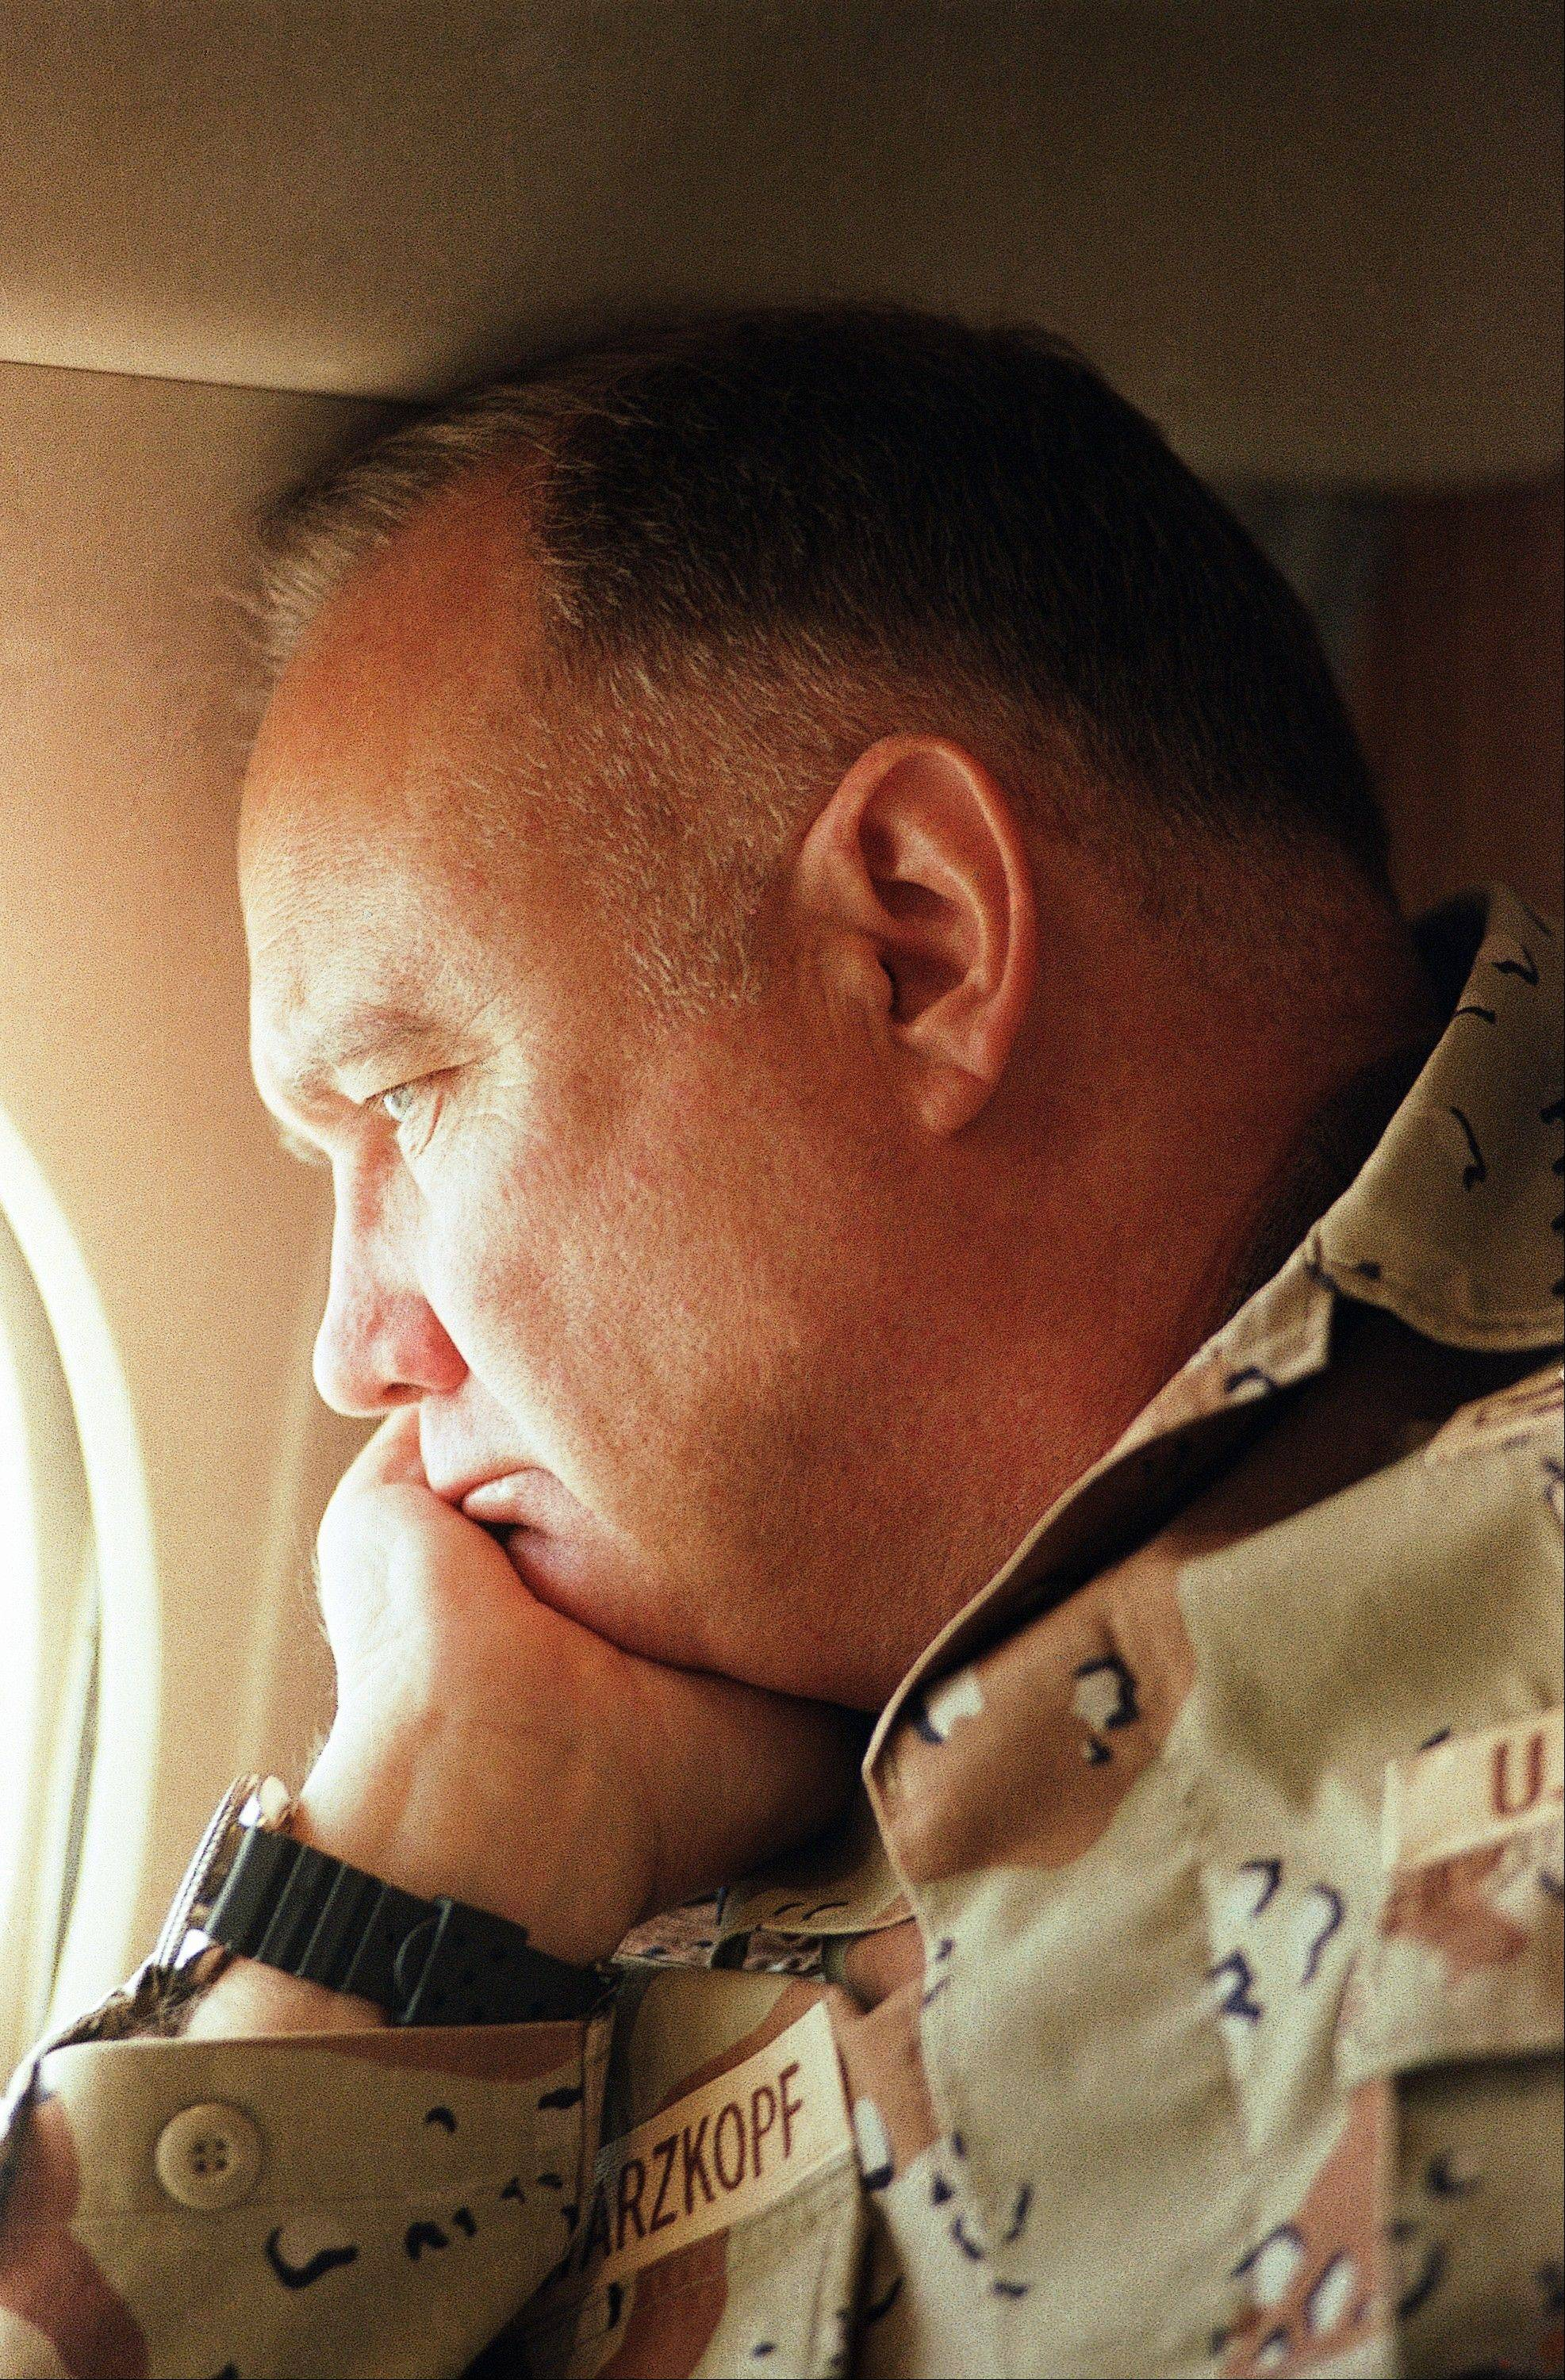 In this Jan. 13, 1991, file photo, General H. Norman Schwarzkopf, commander of U.S. troops in the Gulf, gazes from the window of his small jet on his way out to visit U.S. troops in the desert in Saudi Arabia. Schwarzkopf died Thursday, Dec. 27, 2012 in Tampa, Fla. He was 78.